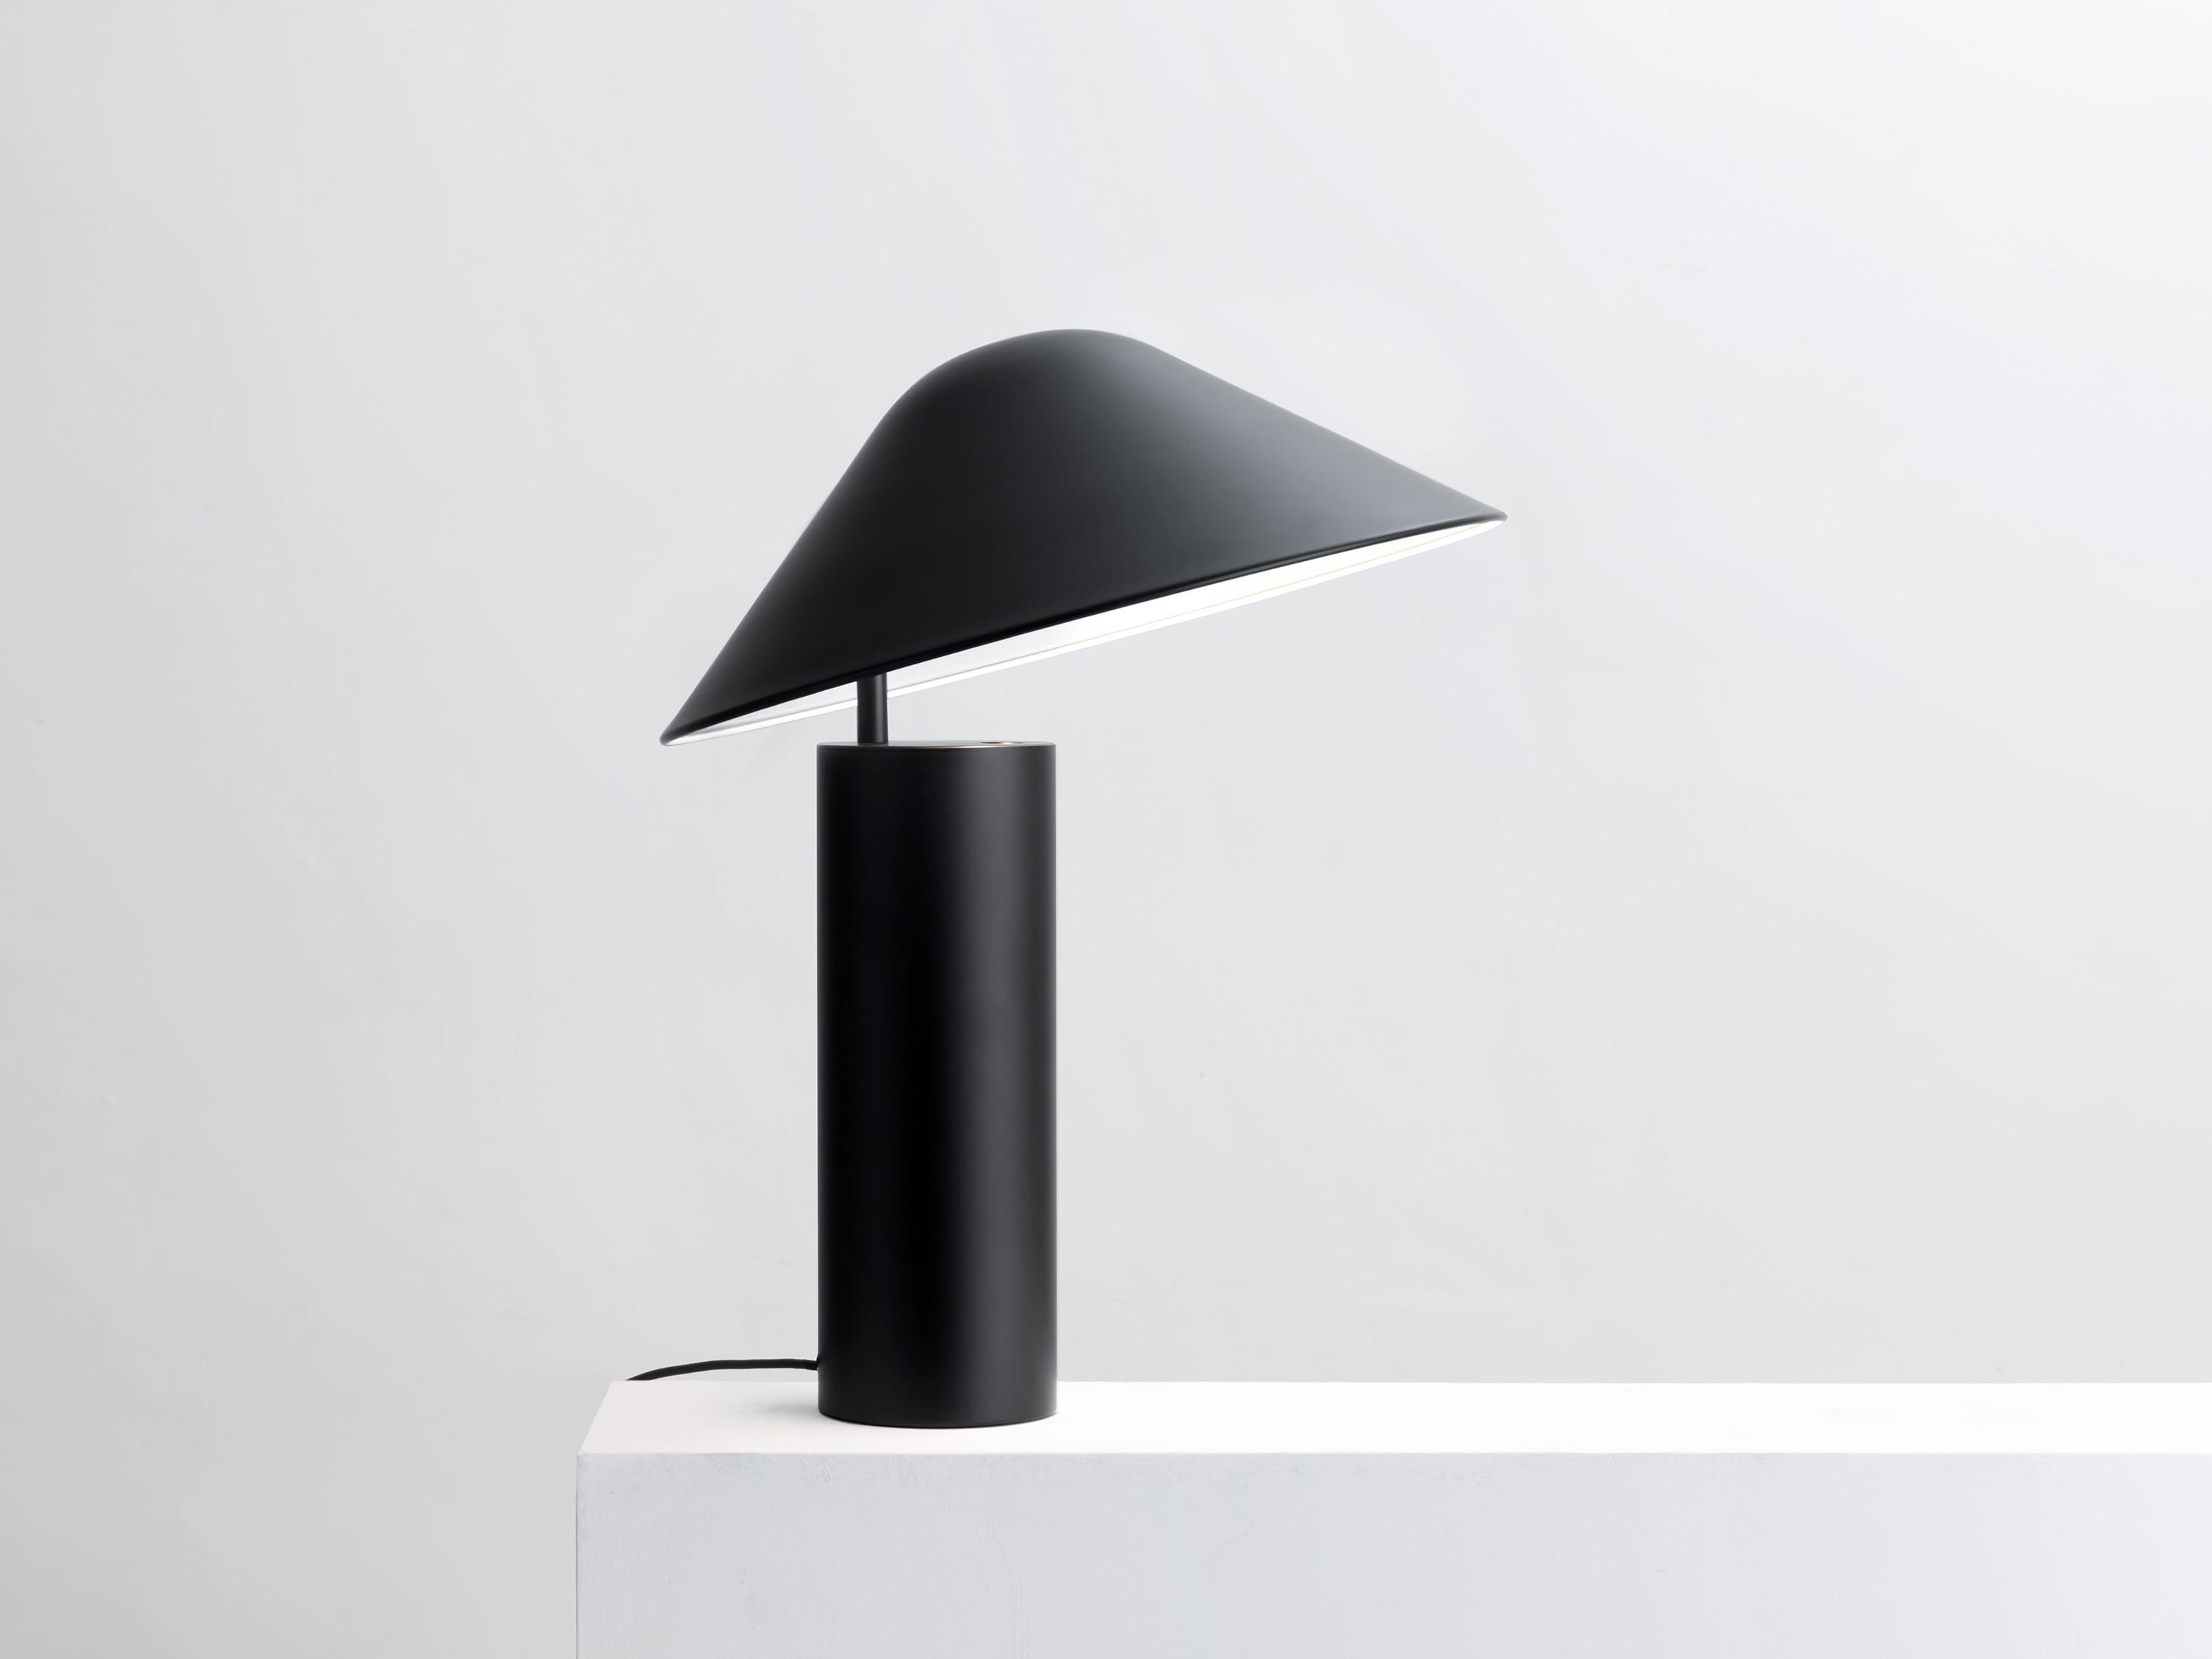 Architecture Desk Lamp Damo Desk Lamp General Lighting From Seeddesign Architonic